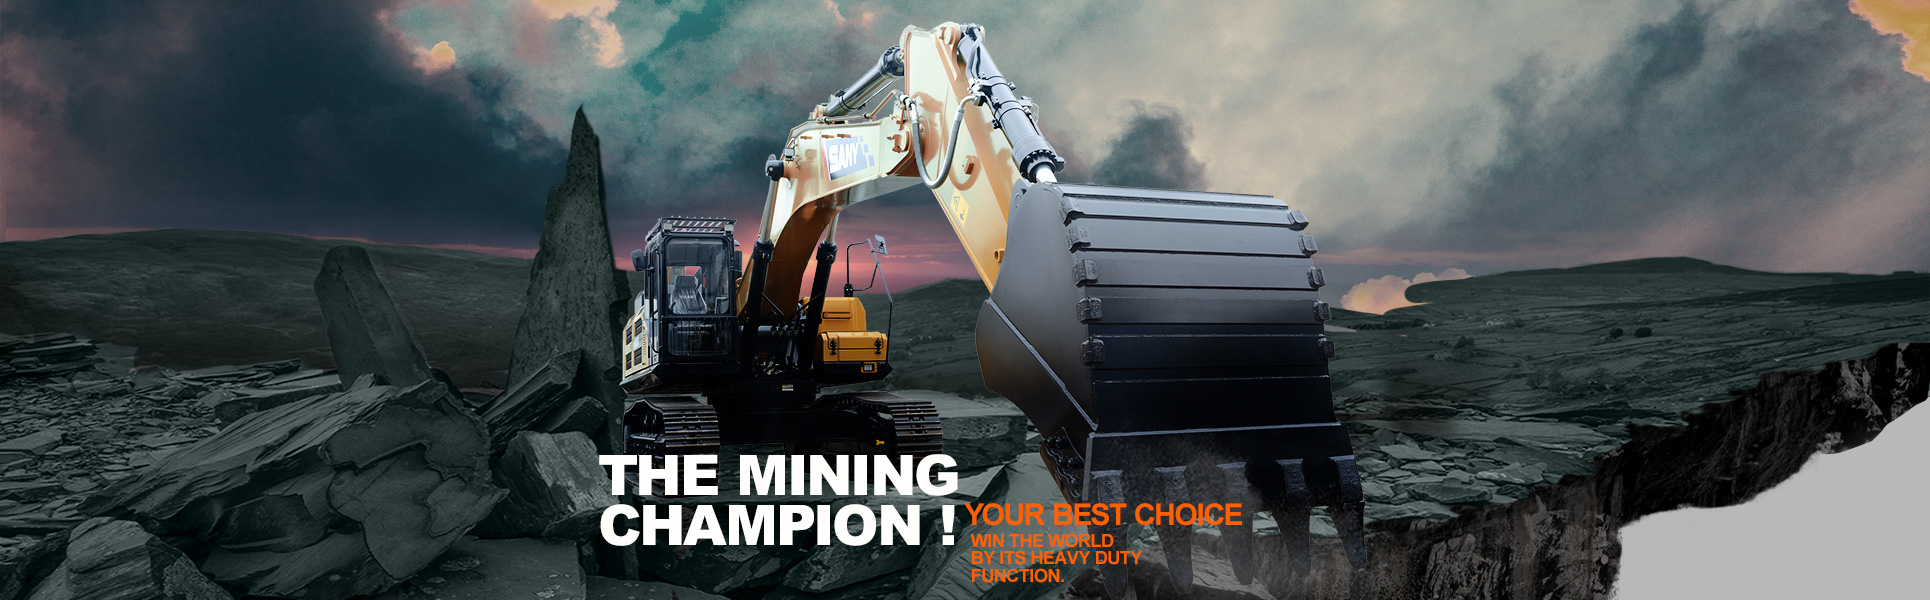 The Mining Champion! Your Best Choice.